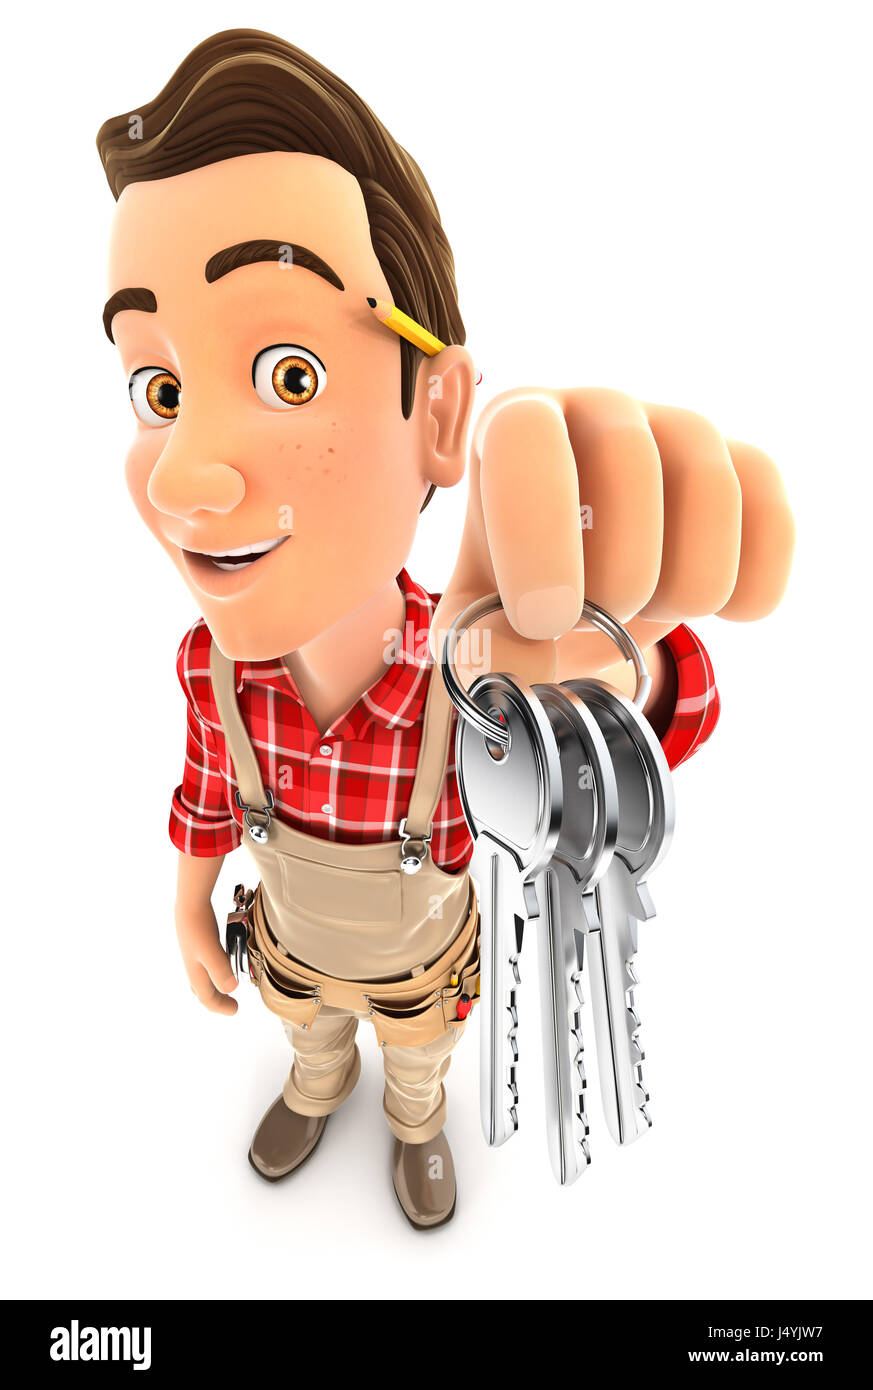 3d handyman holding a bunch of keys, illustration with isolated white background Stock Photo